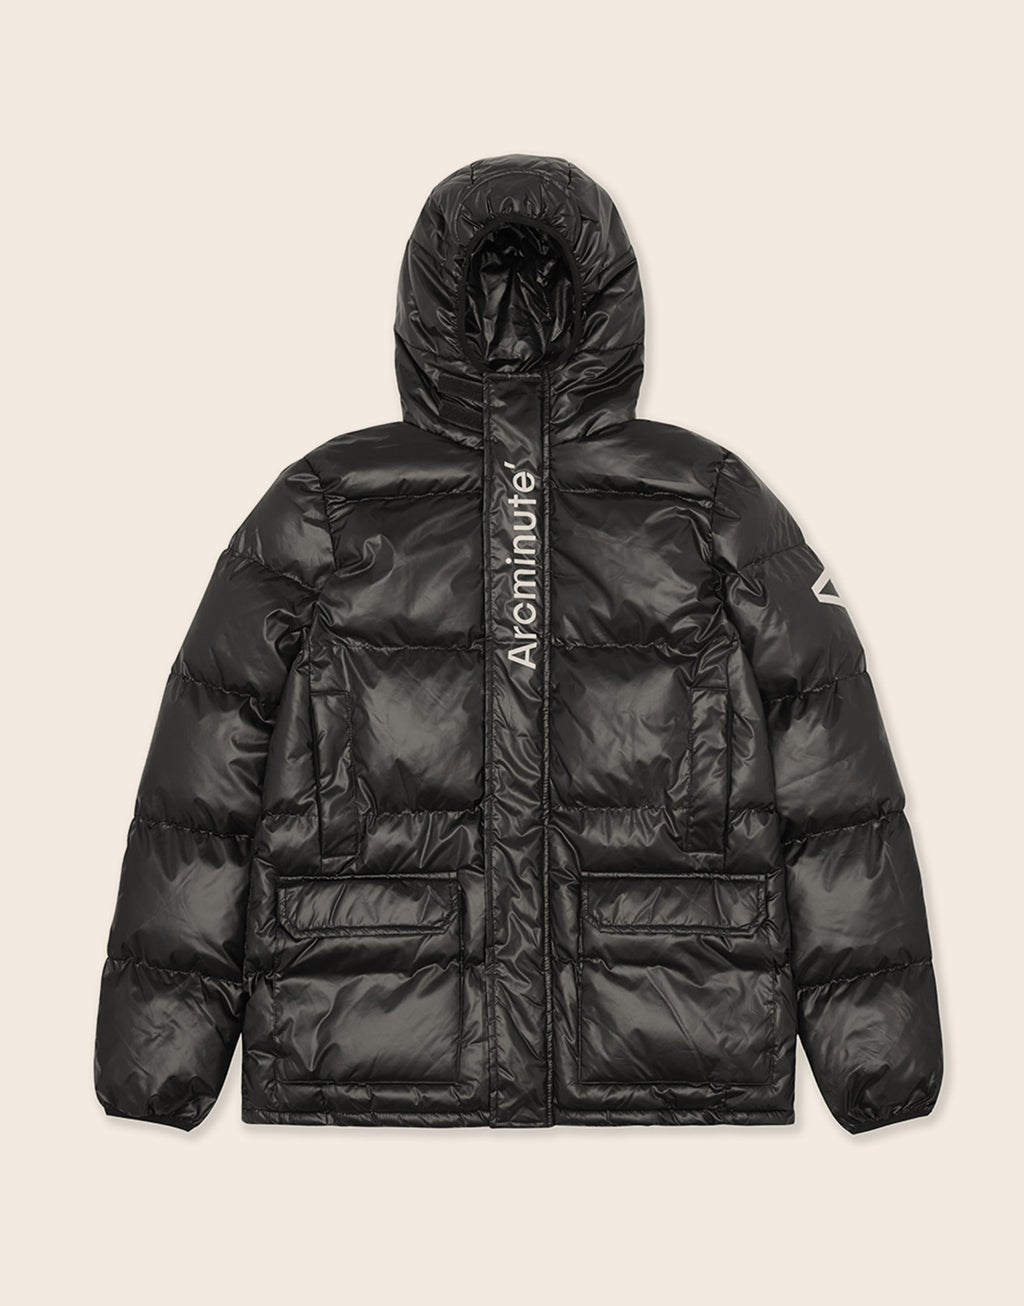 Warp Puffer Jacket Black - Arcminute